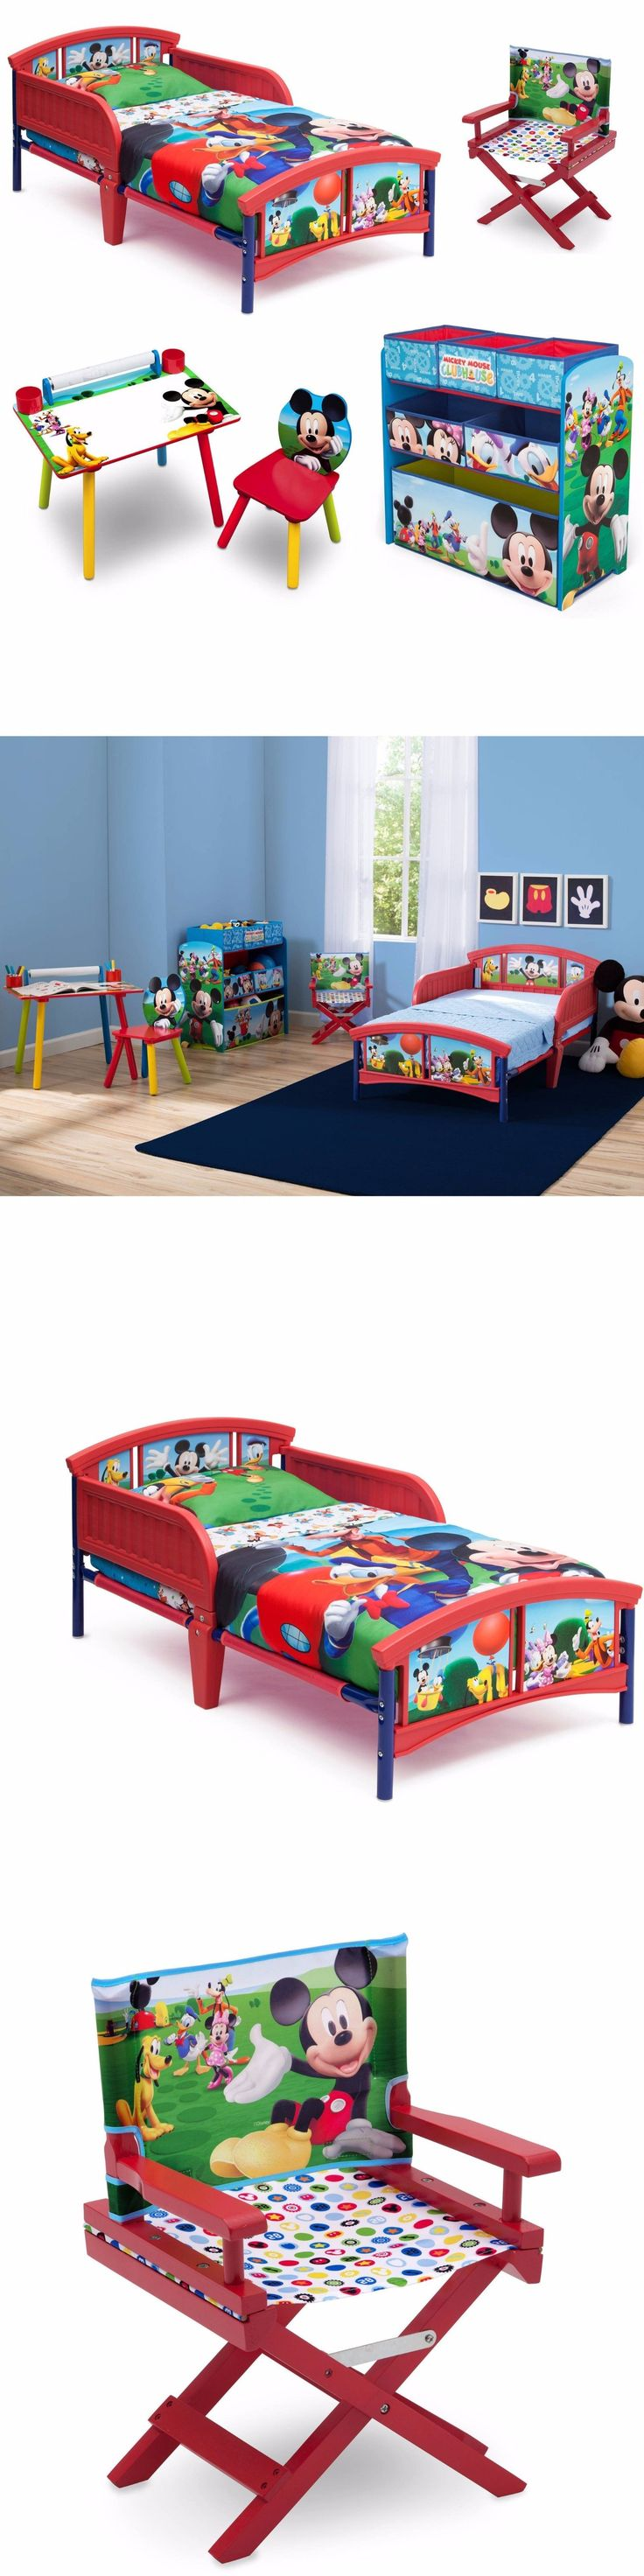 Kids Furniture: Cheap Bedroom Sets Kids Furniture Disney Mickey Mouse Toddler Bed Chair For Boys BUY IT NOW ONLY: $152.82